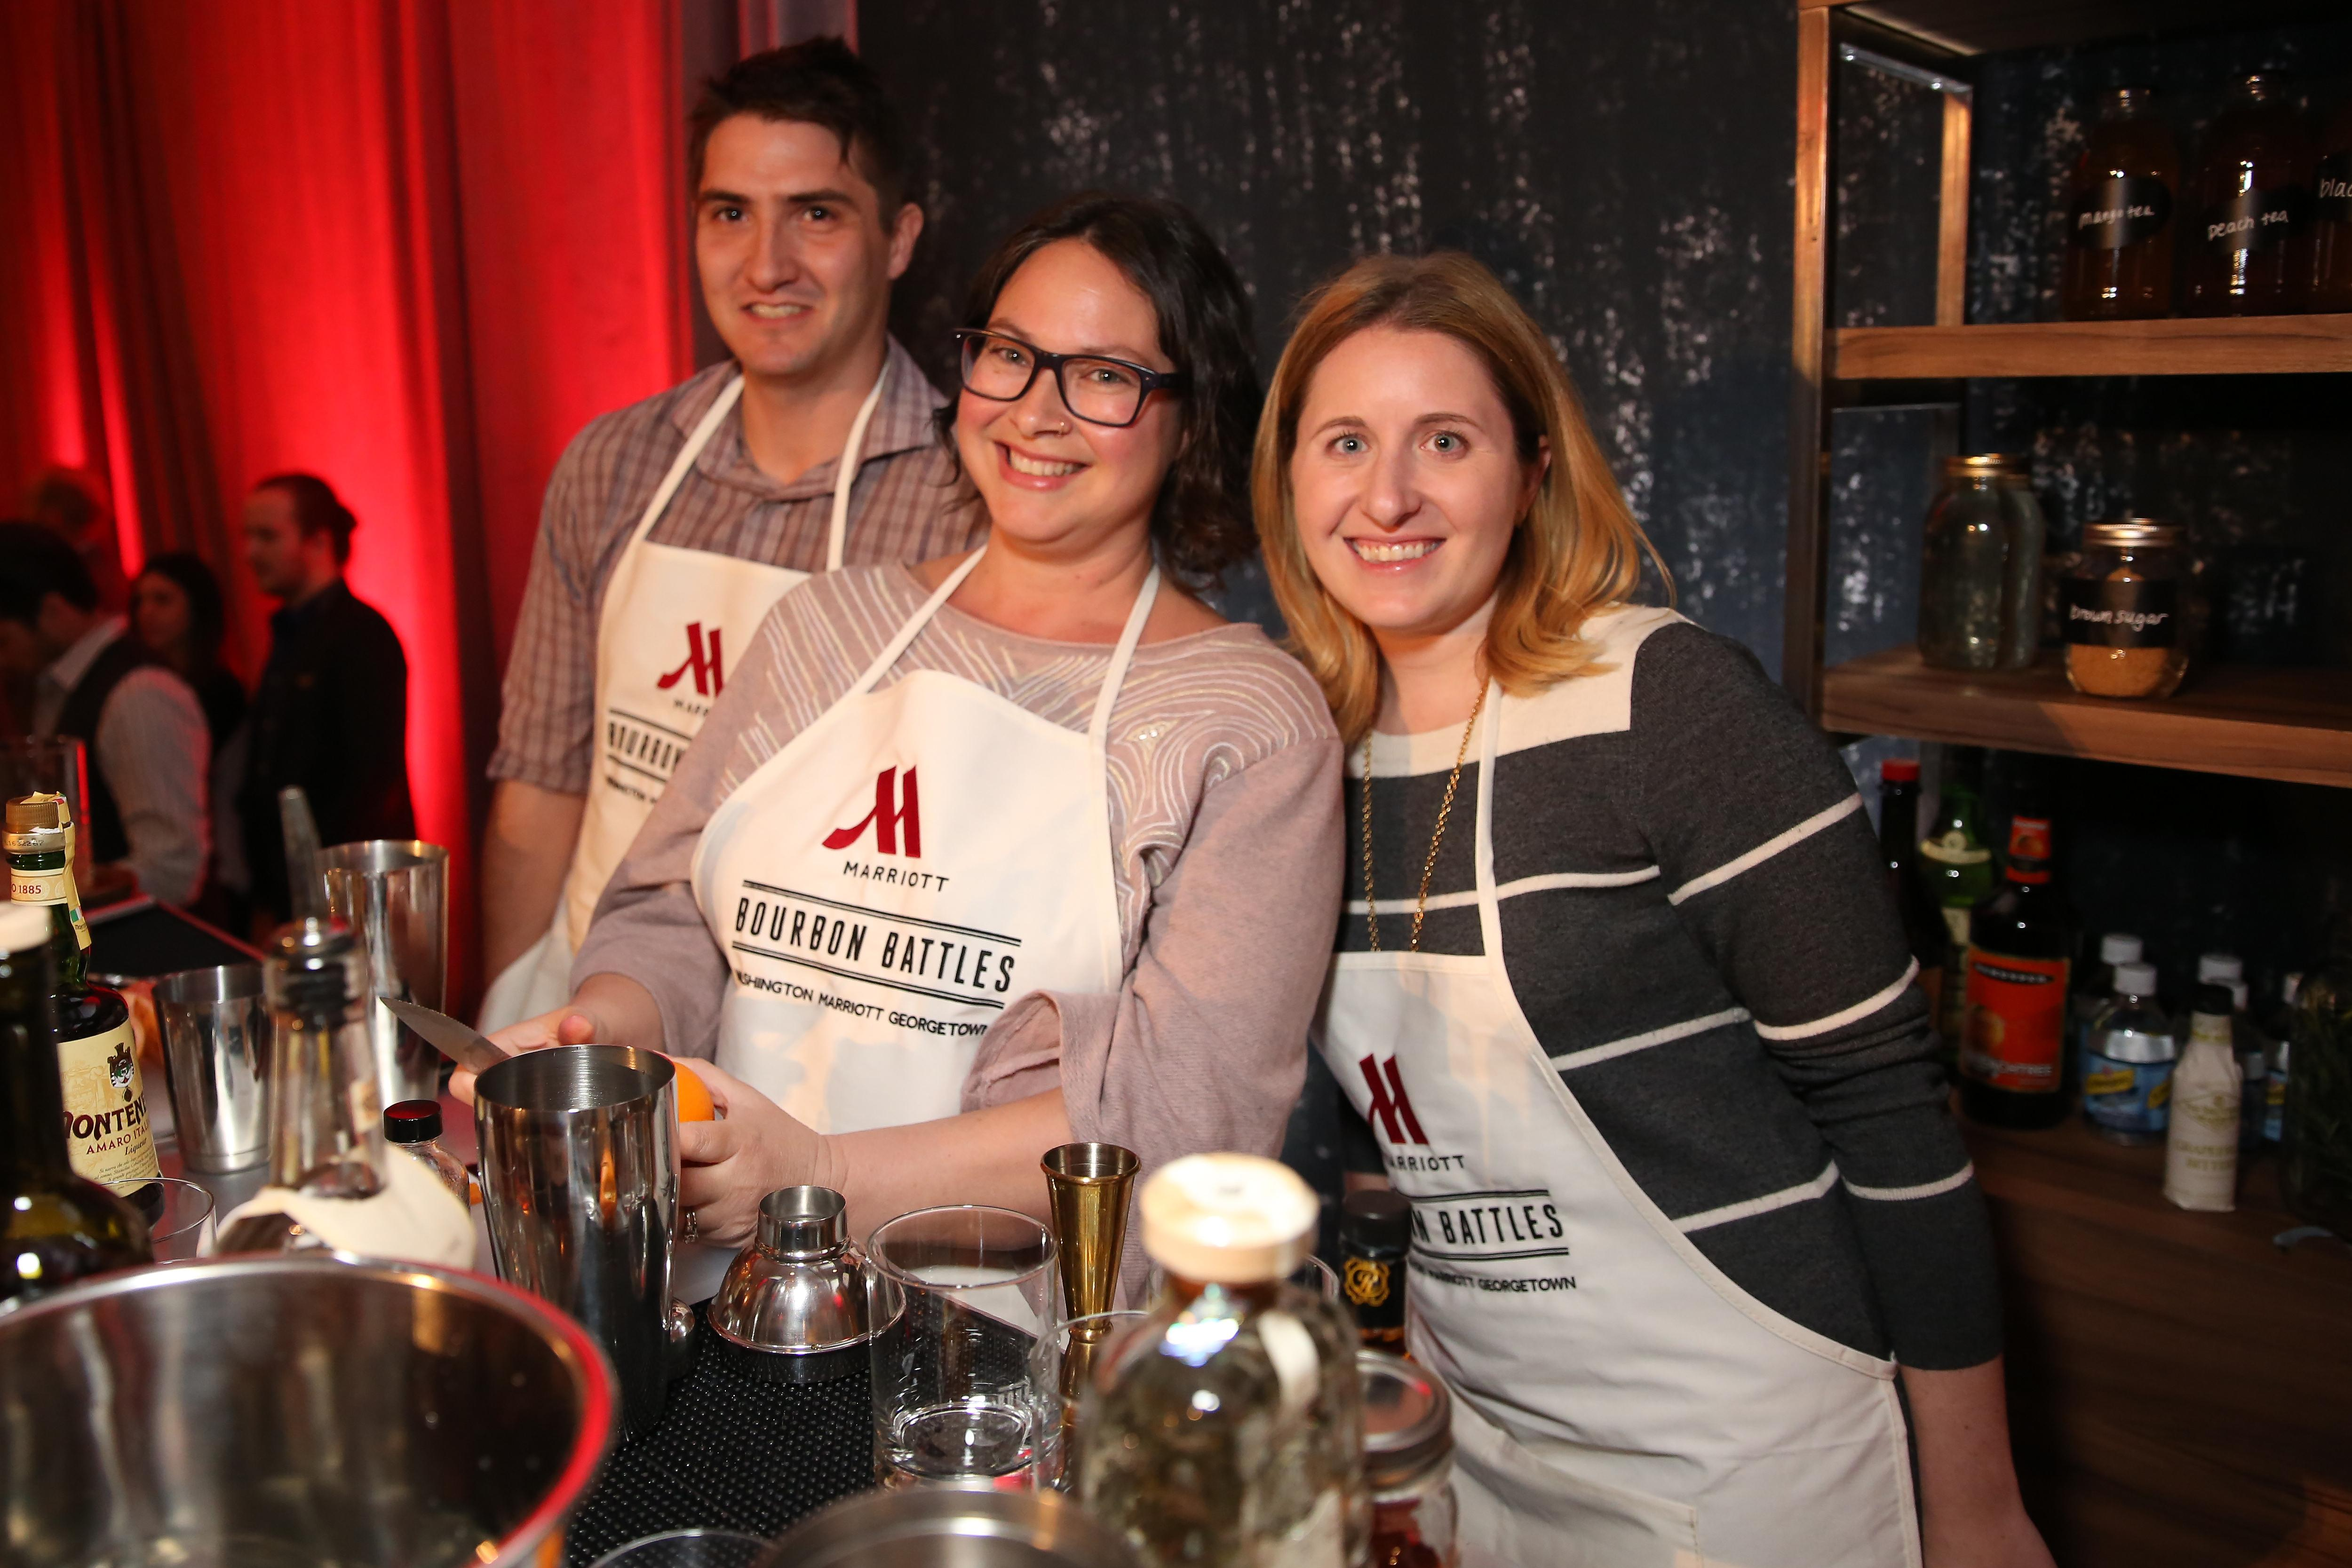 Fortunately for the journalists, they only had to battle each other - not the pro bartenders in the room. From left, Travis Mitchell, Rina Rapuano and Laura Wainman. (Amanda Andrade-Rhoades/DC Refined)